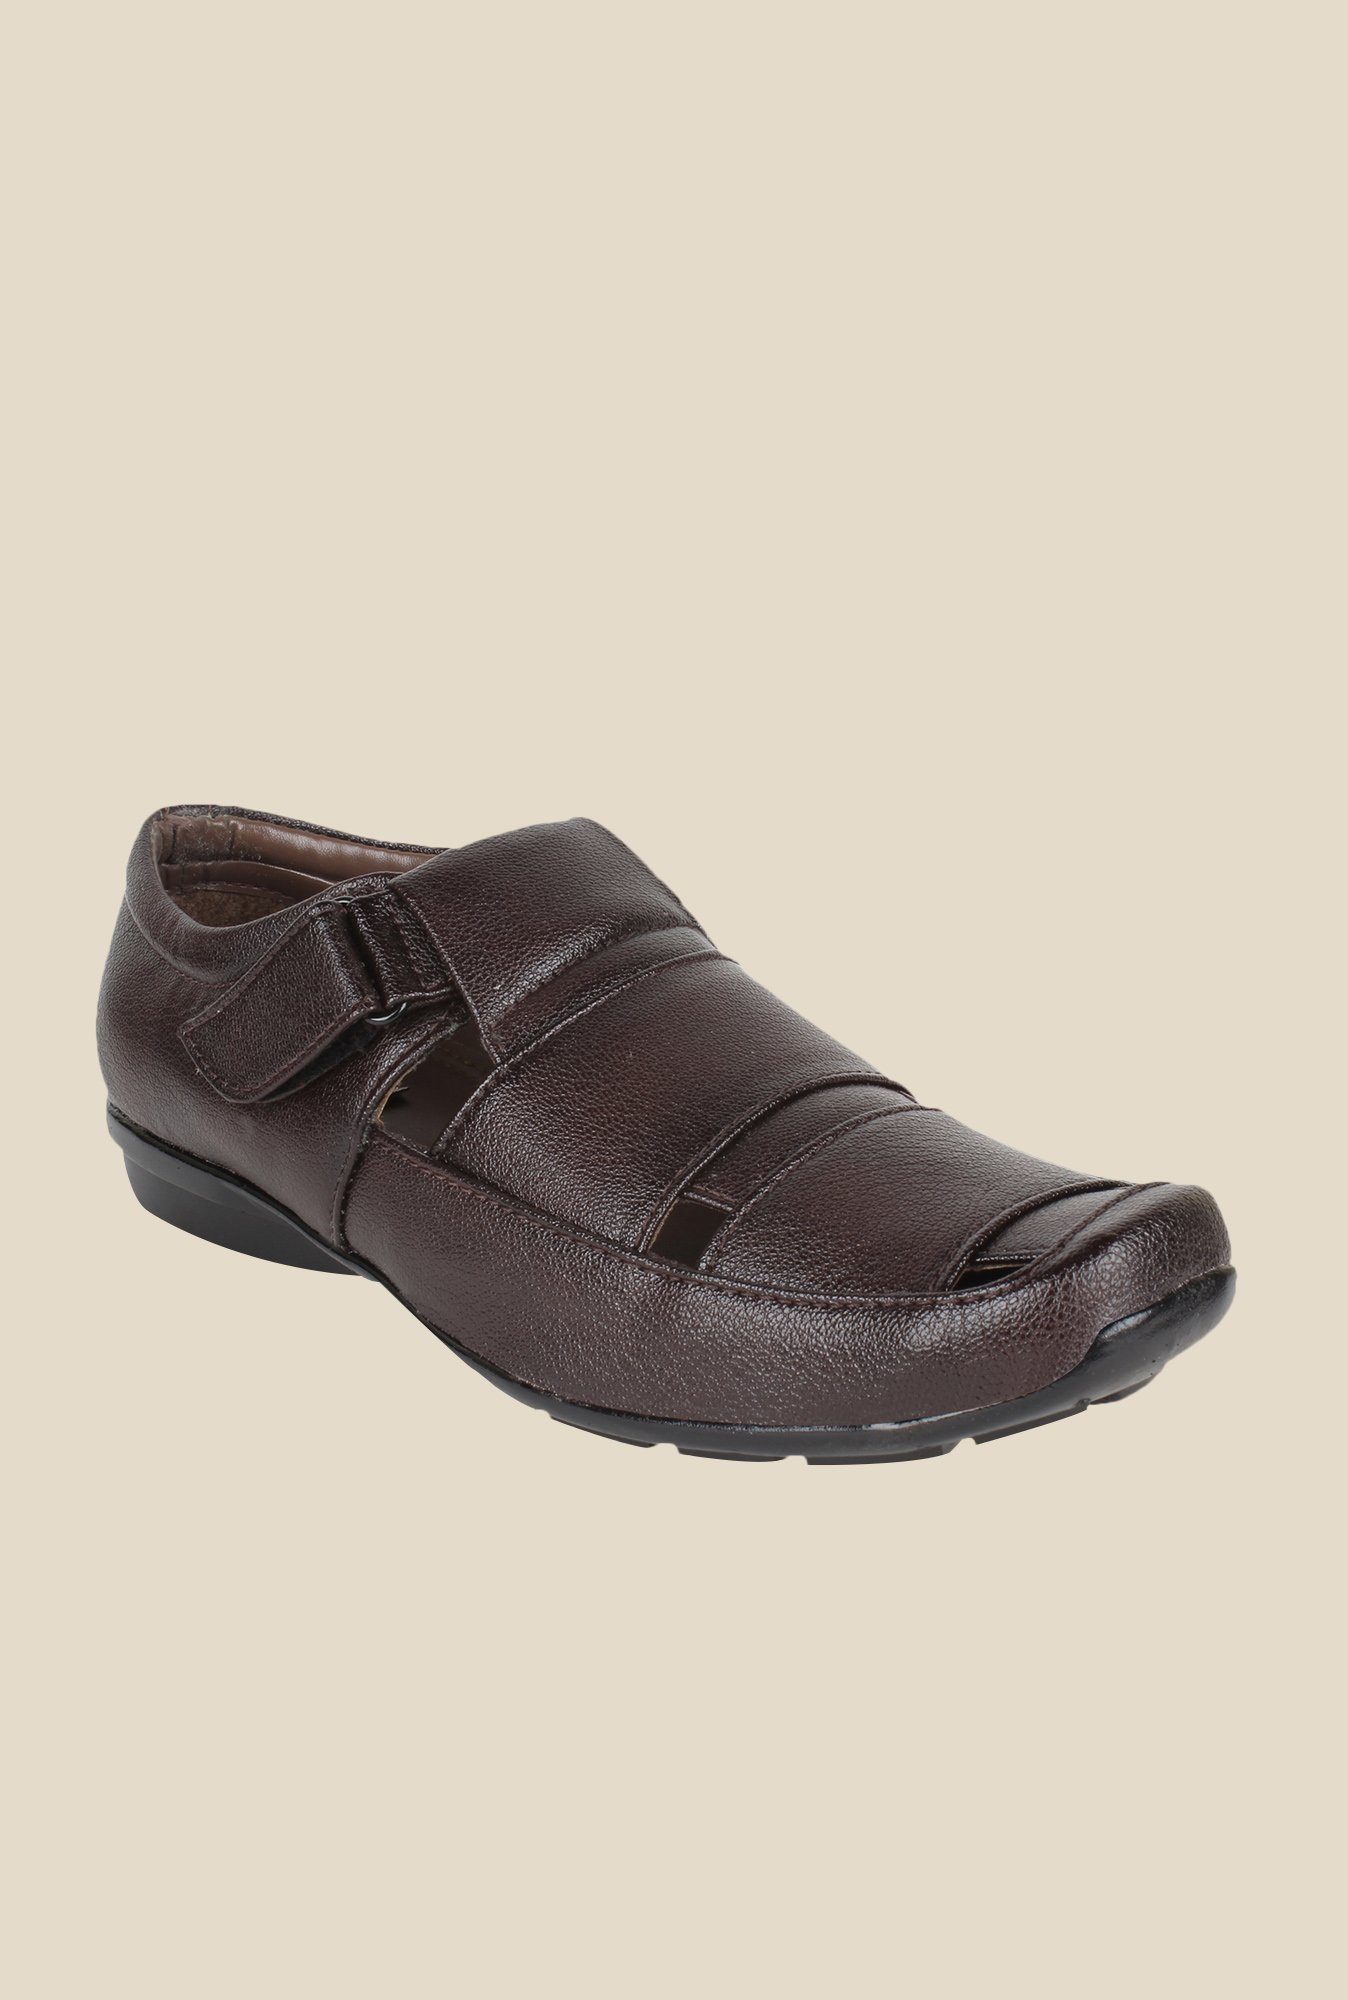 Rexler Brown Fisherman Sandals